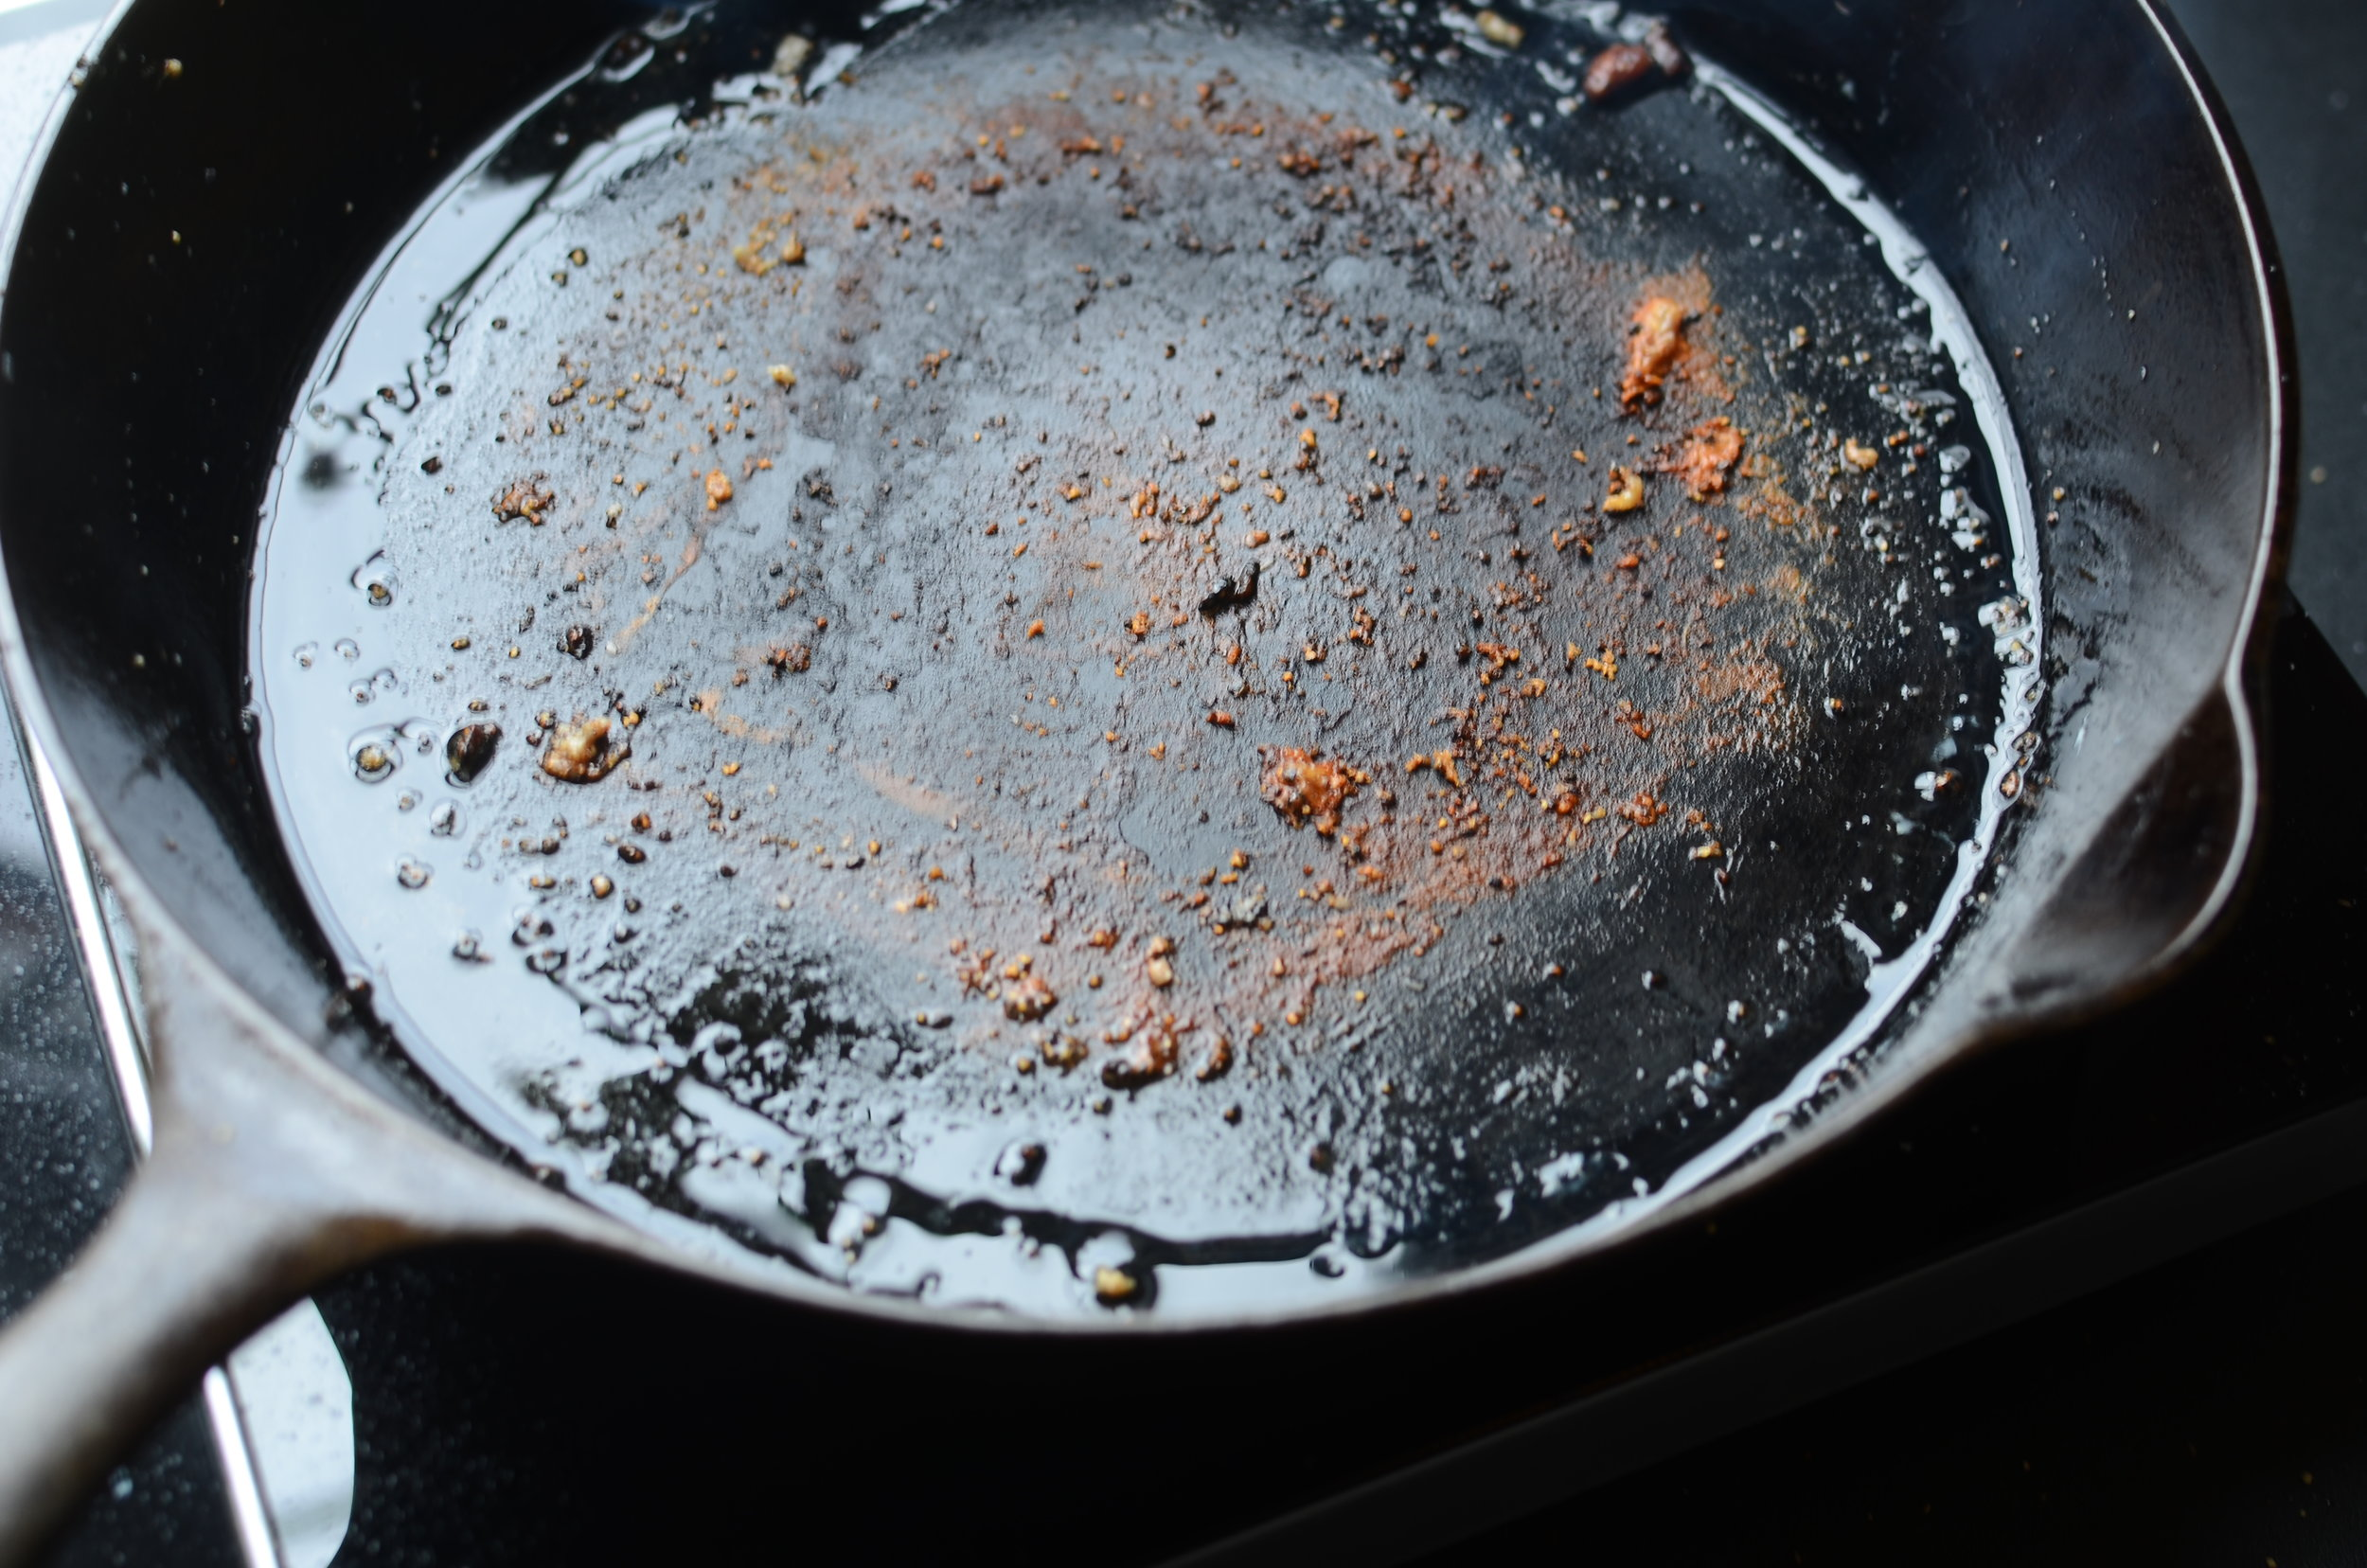 fond-in-cast-iron-skillet